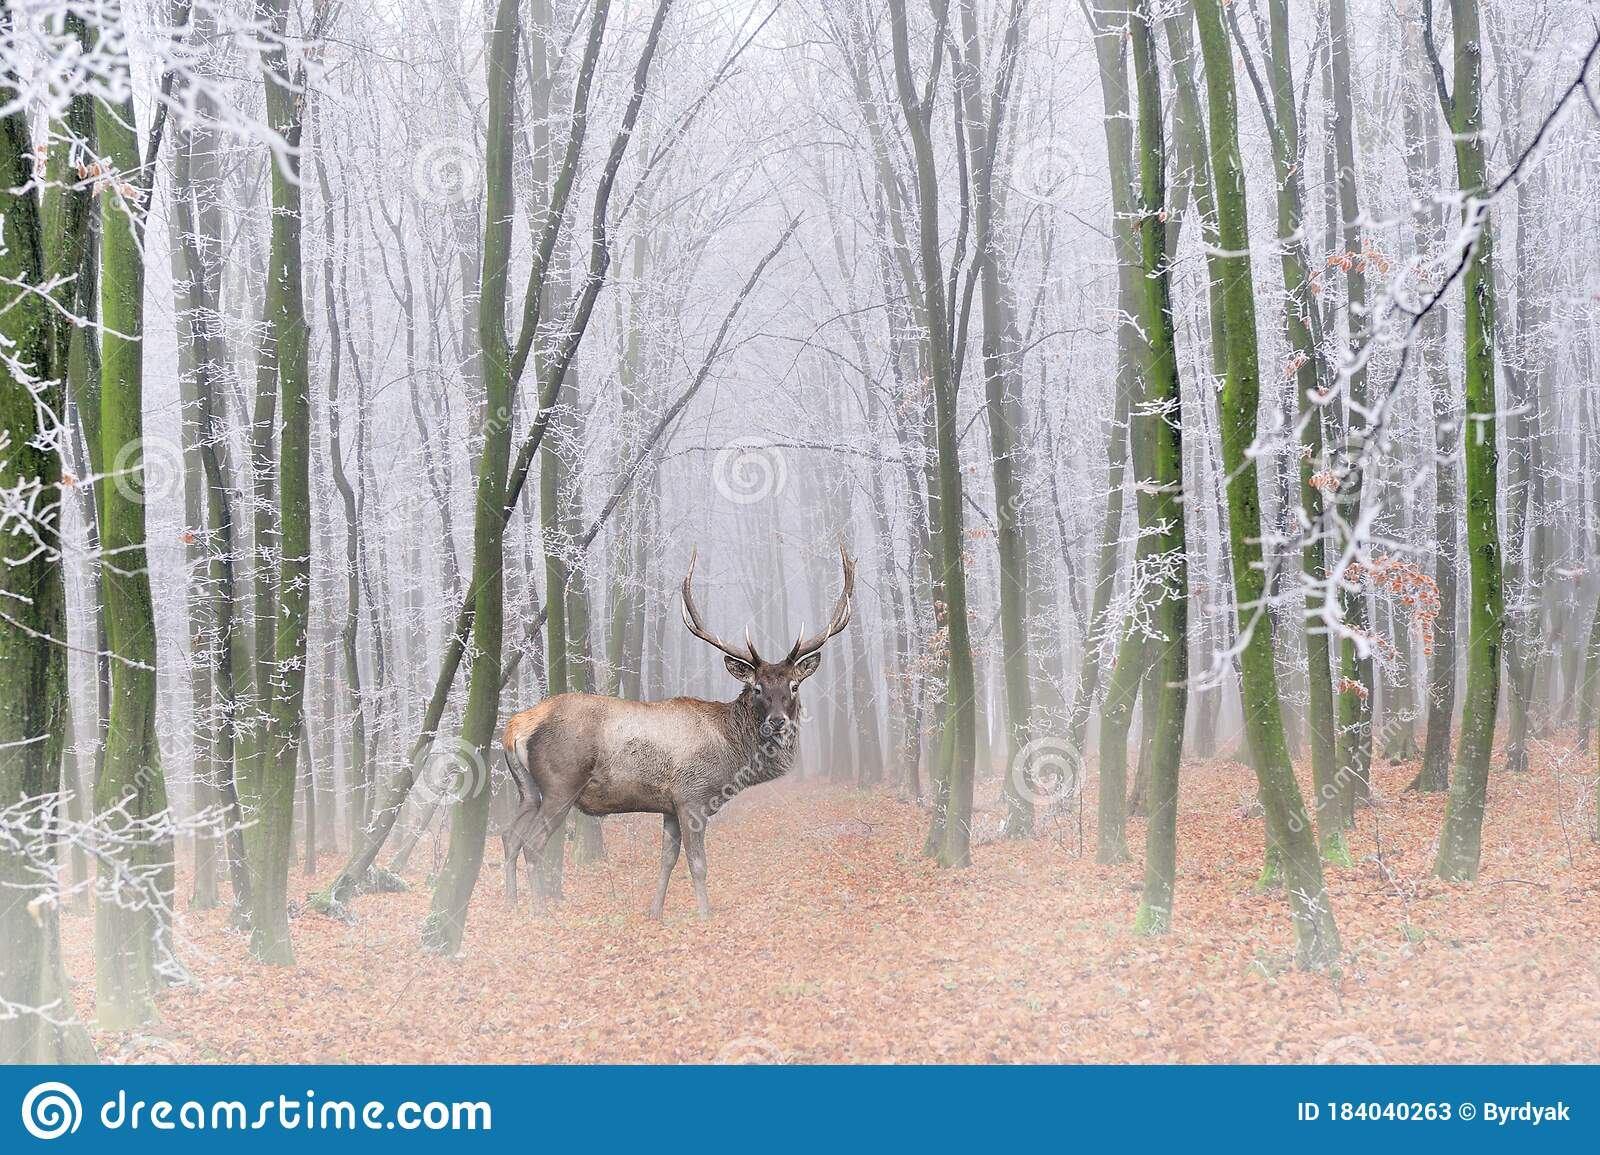 2 991 Deer Forest Fog Photos Free Royalty Free Stock Photos From Dreamstime Dawn forest deer trees fog nature